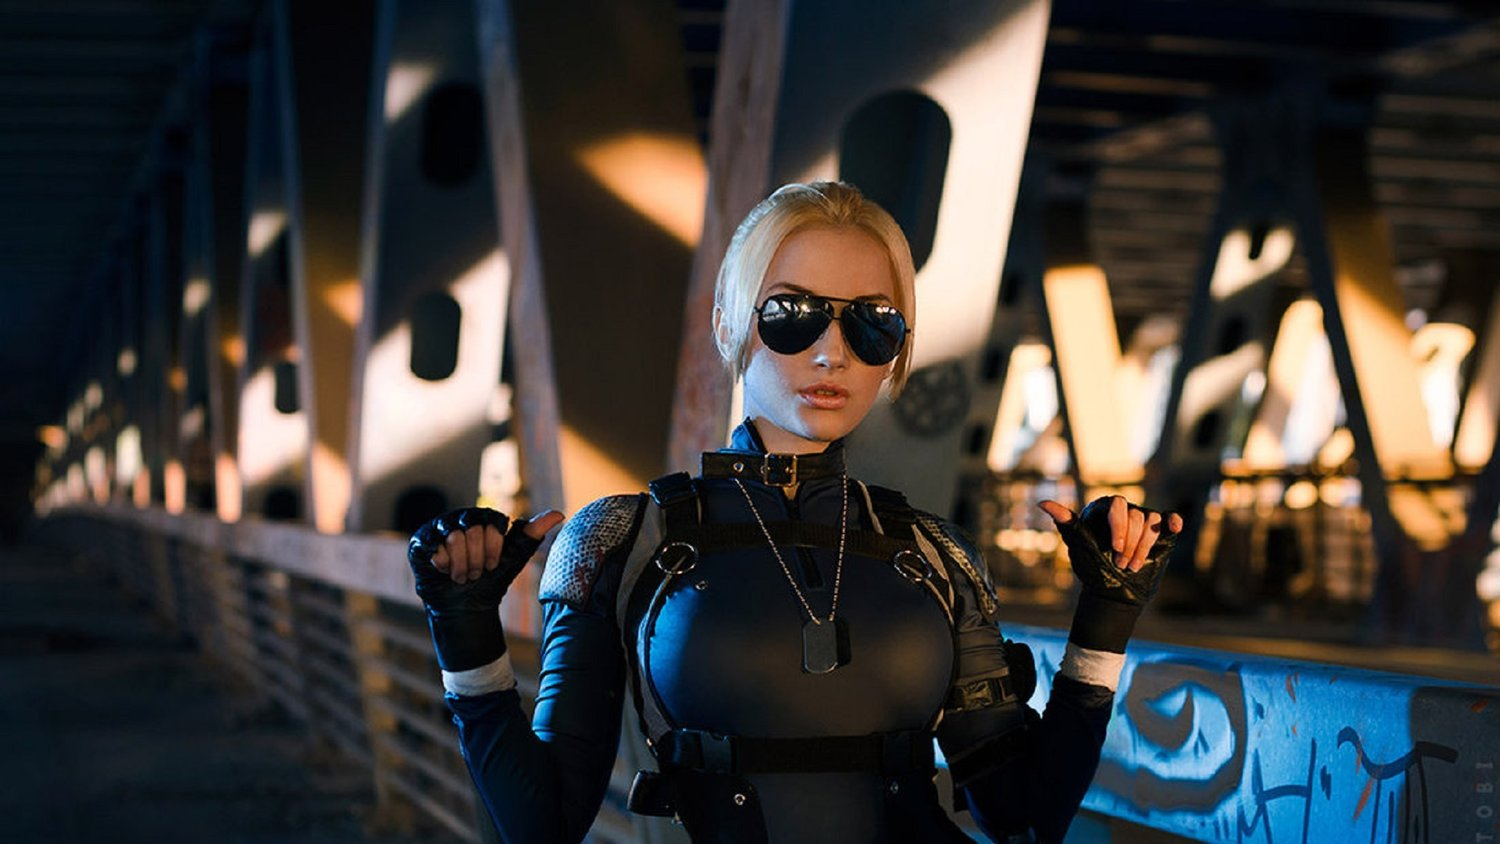 Cassie Cage Is Kicking Ass In This MORTAL KOMBAT X Cosplay